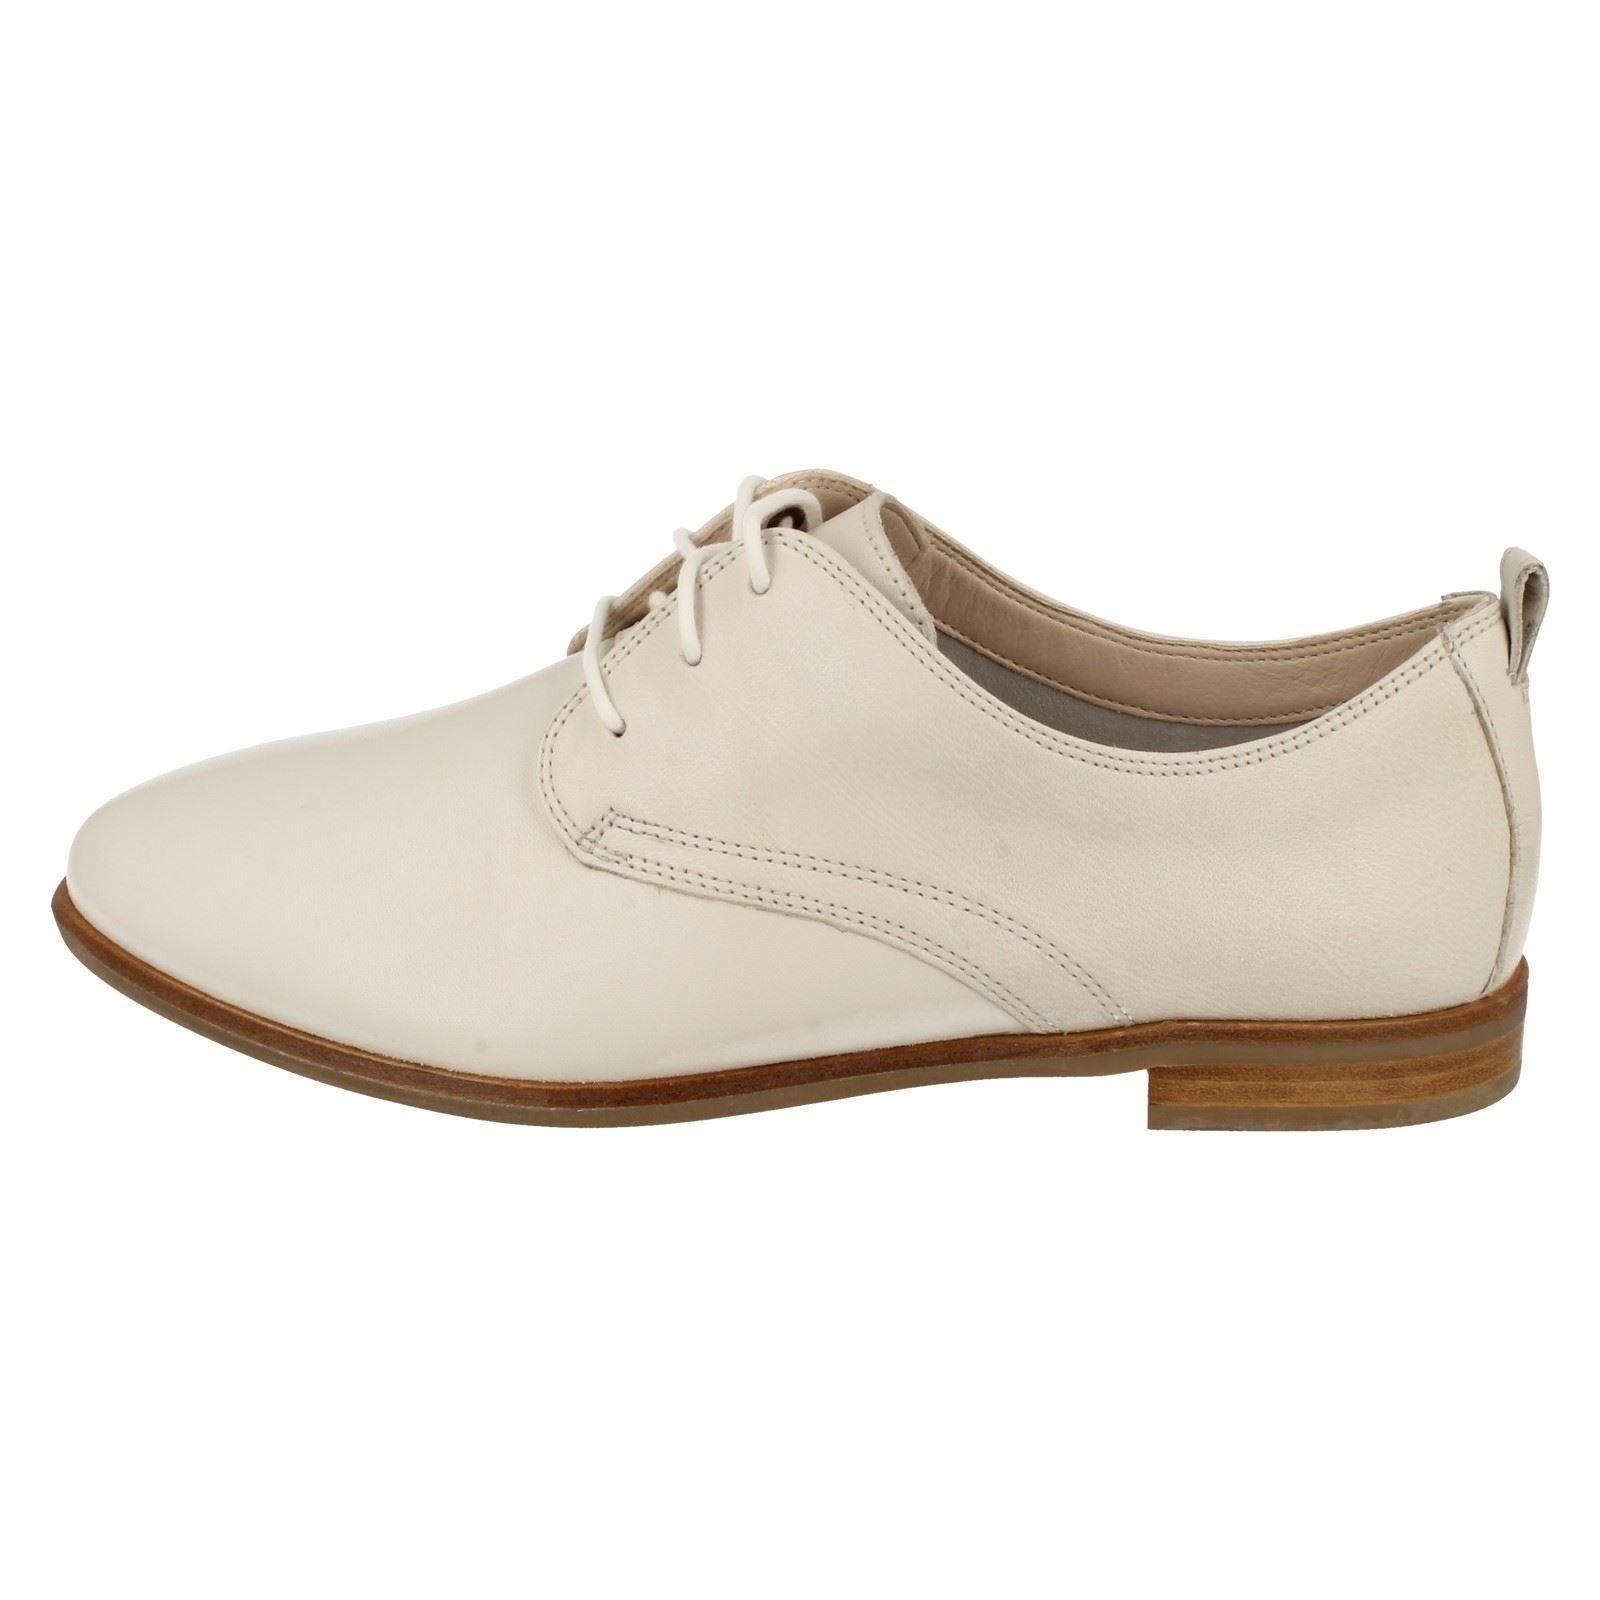 Clarks Ladies Lace Up Flat Shoes Medora Bella